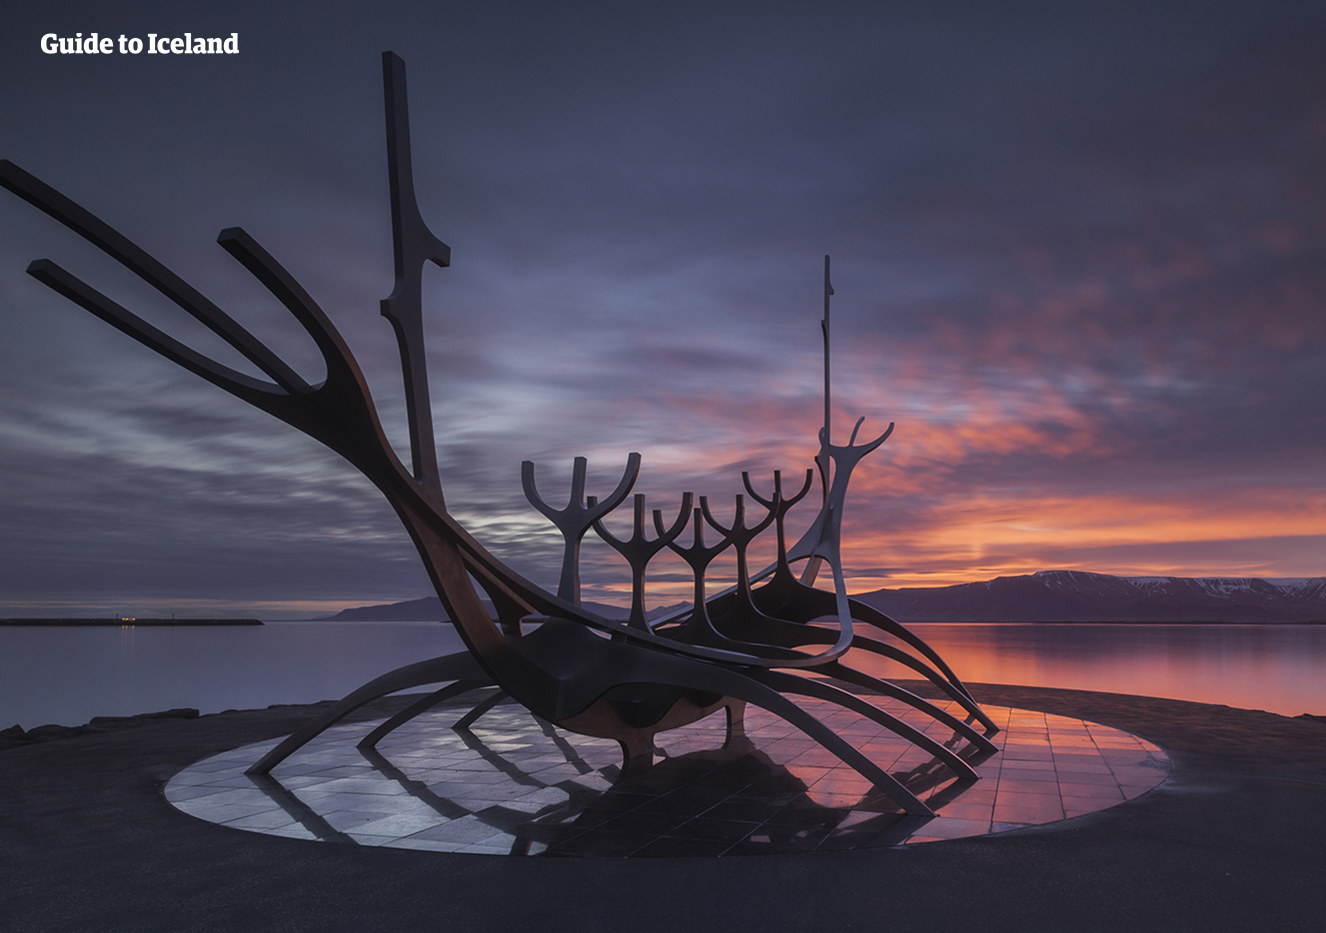 A tour of Reykjavík would not be complete without a visit to the Sun Voyager stature close to Harpa Concert Hall.